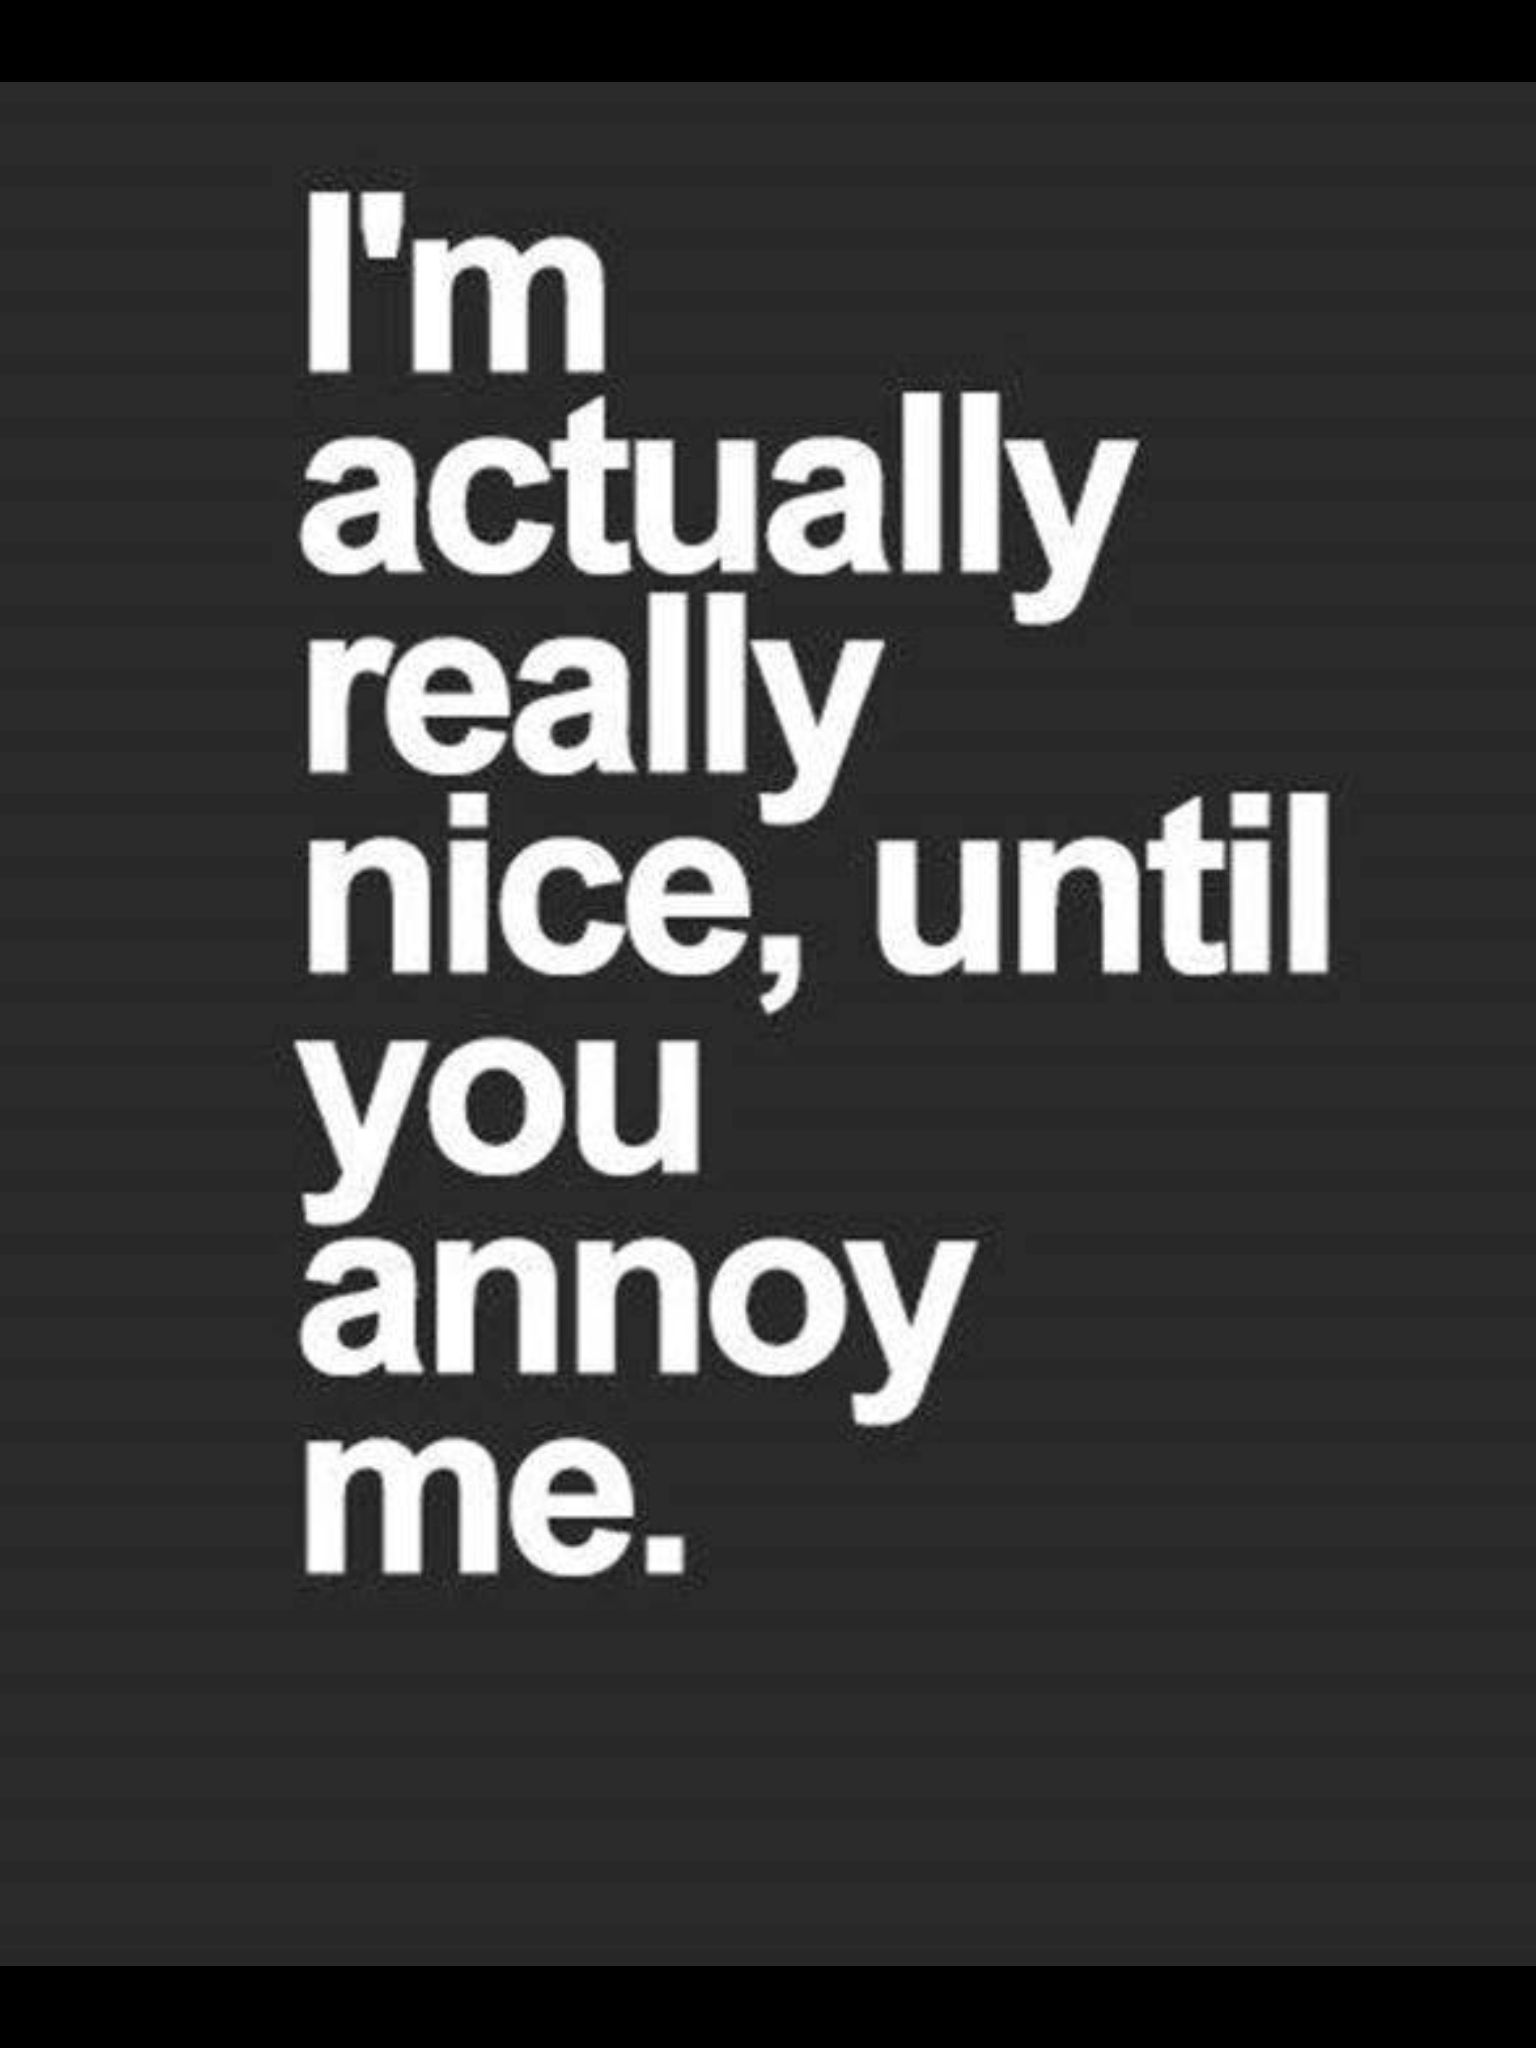 Don T Annoy Me Annoying People Quotes Sarcastic Quotes Sarcasm Quotes